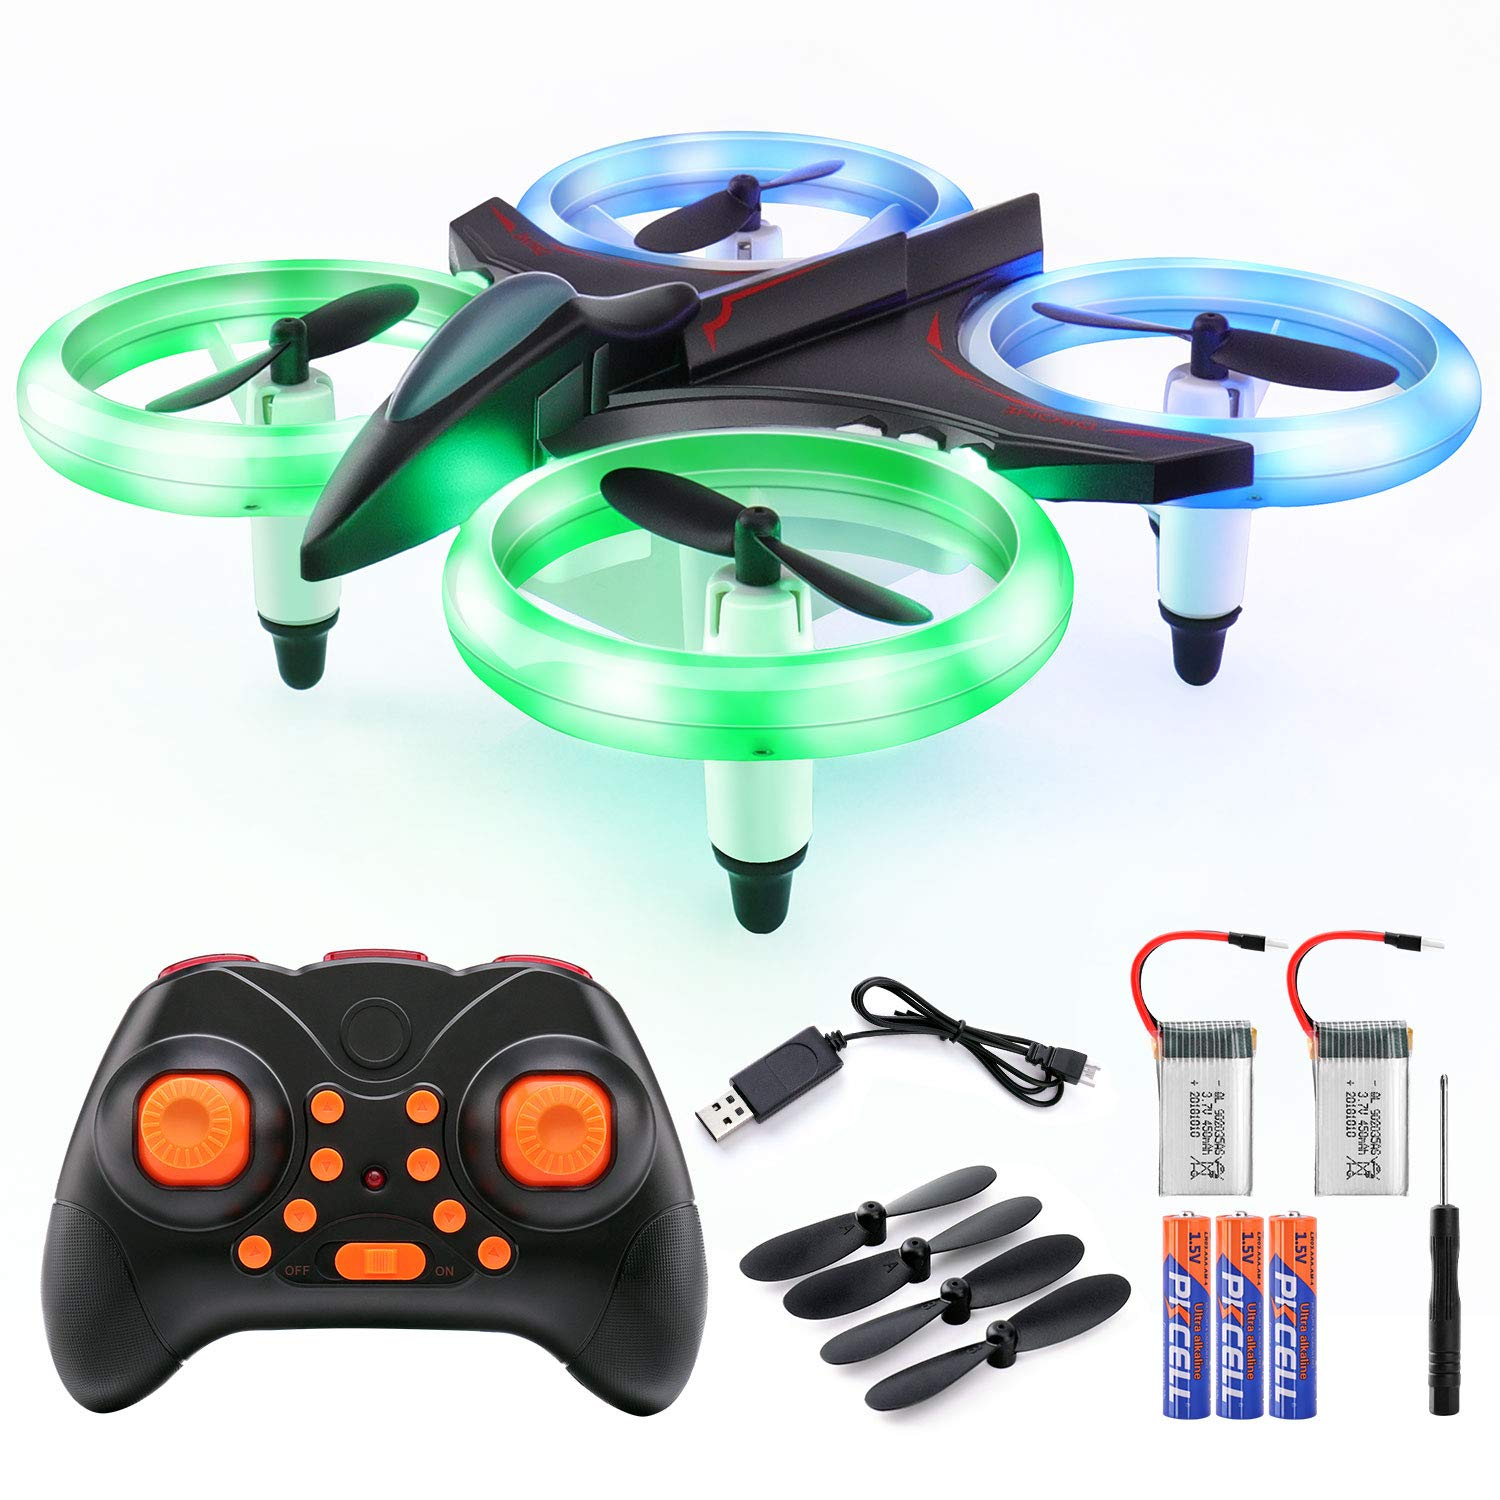 Veken Mini RC Drone Quadcopter for Kids Adults 2.4Ghz 4 CH 6-Axis Gyro RC Helicopter with LED Lights, Auto Hovering, One Key Take Off/Landing, 3D Flip, Headless Mode Good Choice Drone for Beginners by Veken